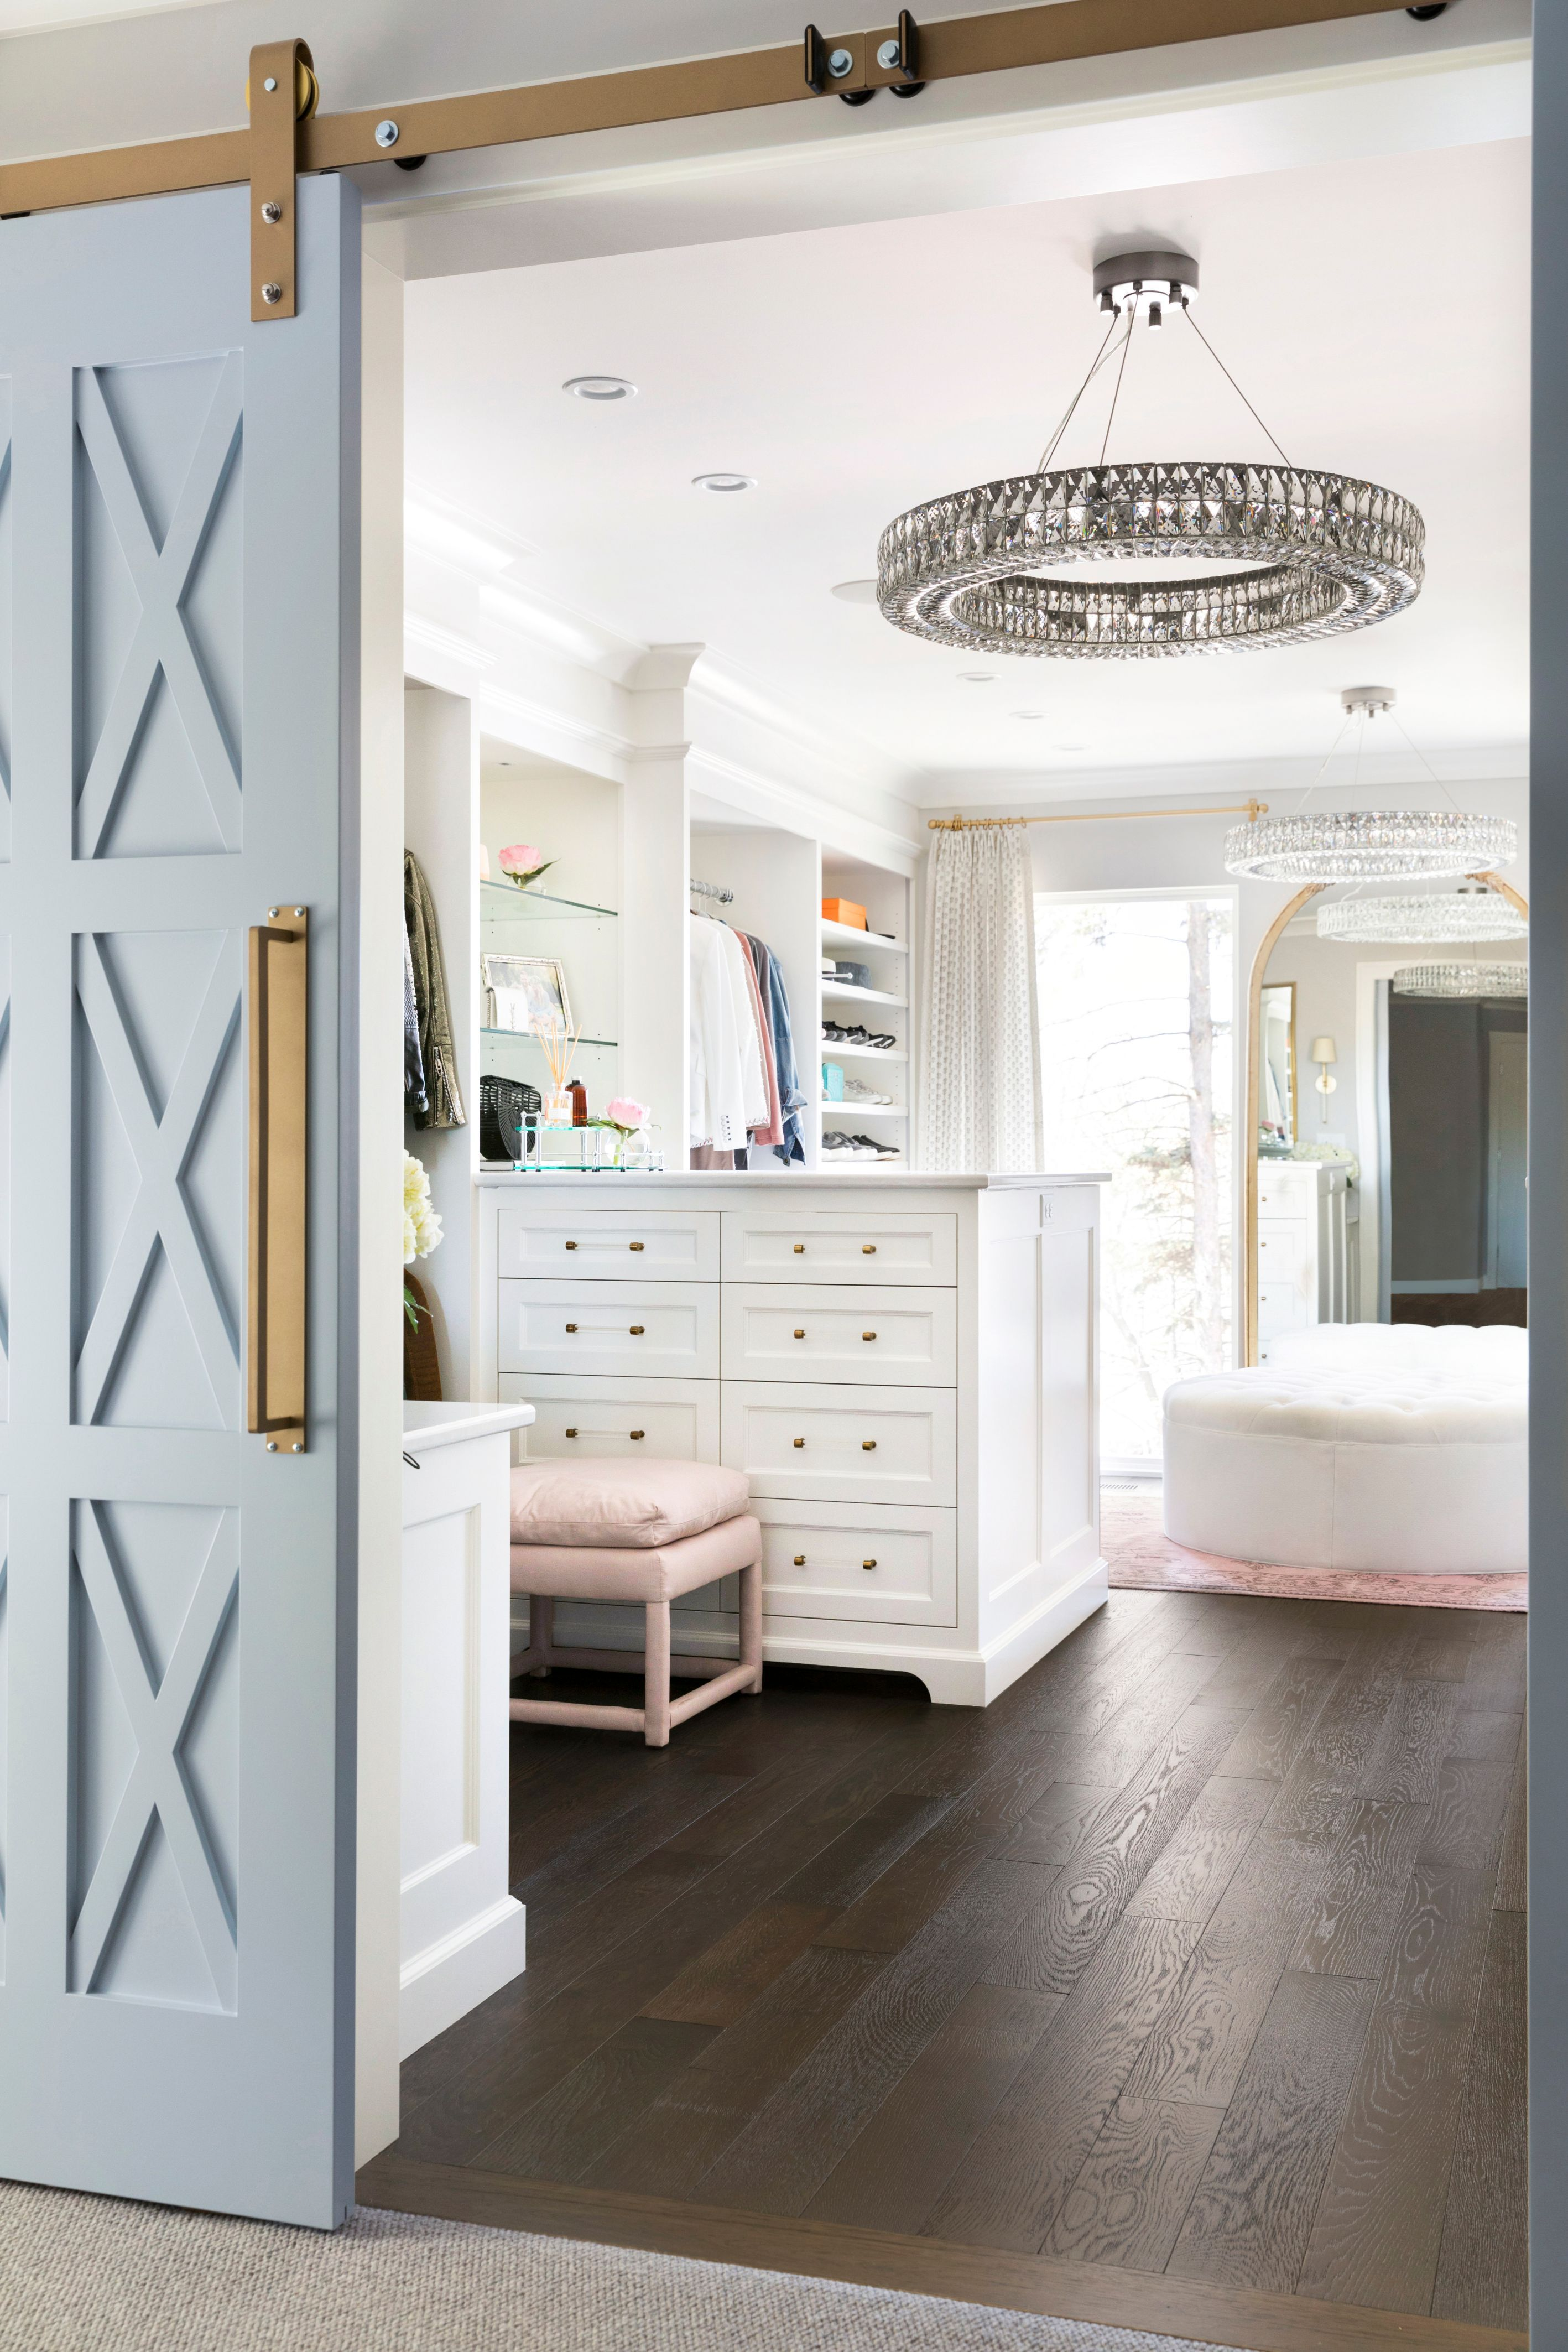 5 Ingenious Storage Ideas to Borrow from the Ultimate Glam Closet